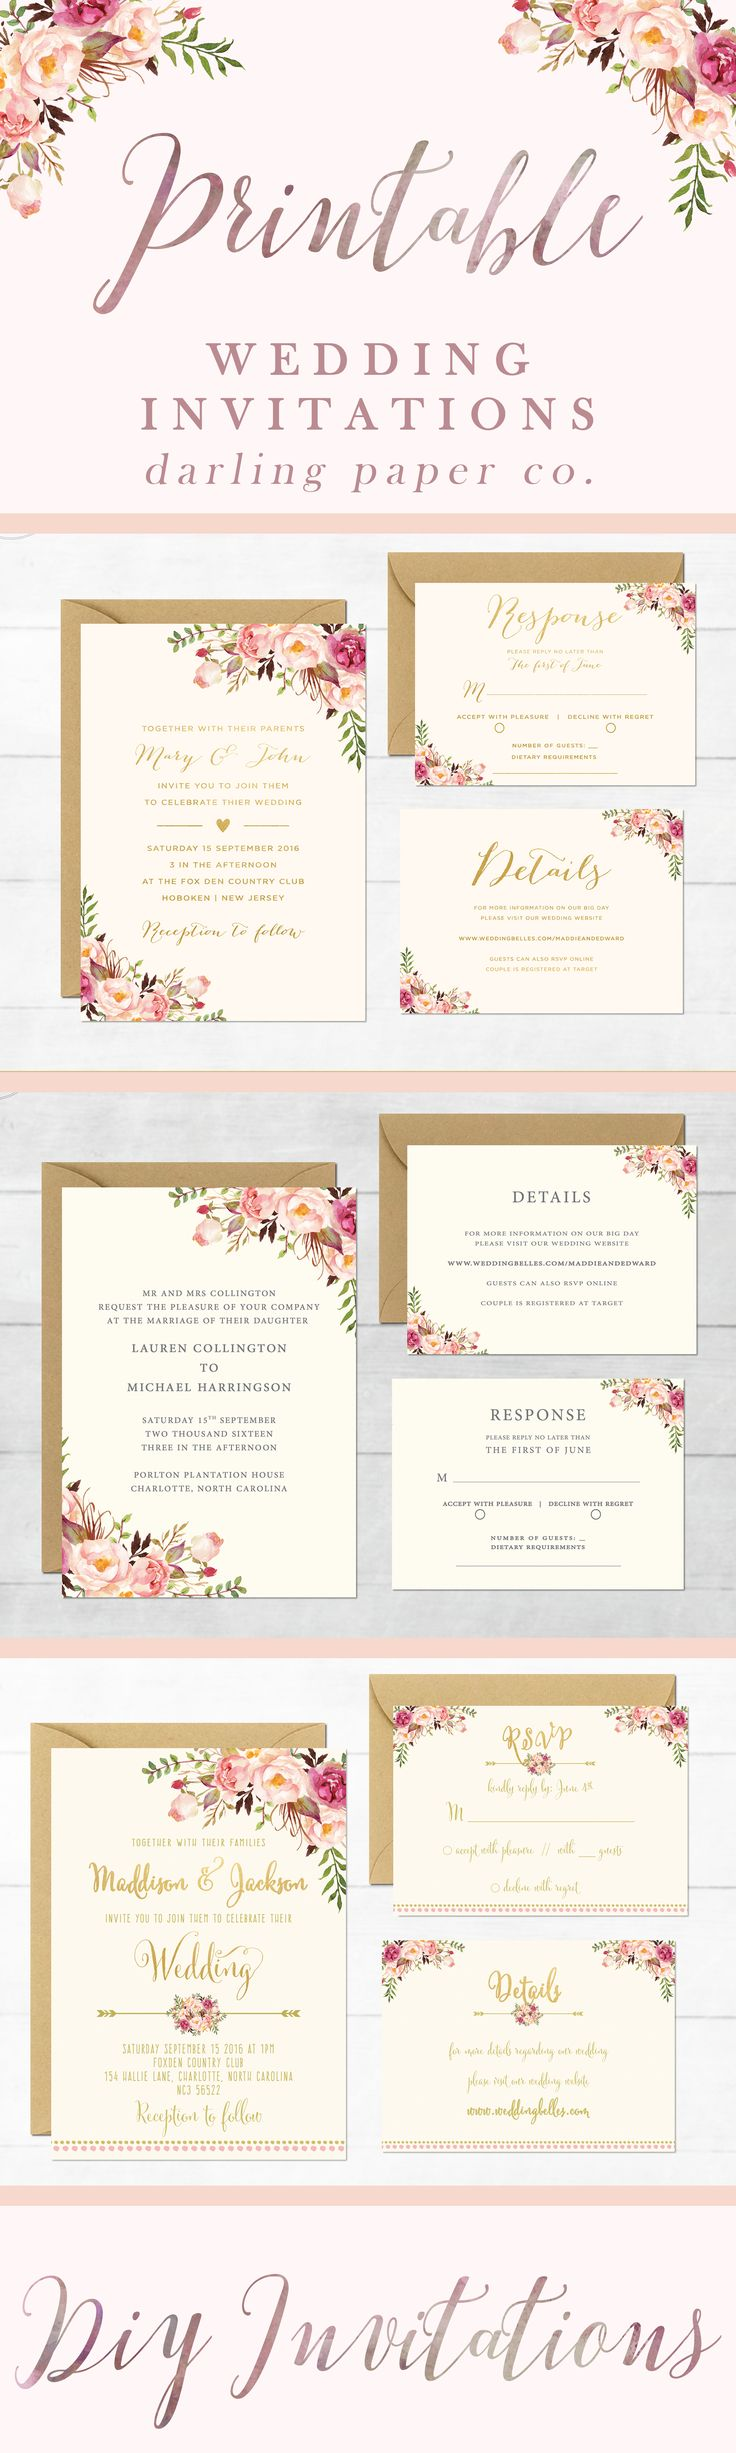 Wedding Invitations DIY - Printable Wedding Invitations - Floral Wedding Suite - Boho Wedding - Chic Wedding Invitations - Rustic Wedding Invitations - Printable - DIY - Wedding Invitation Template by DarlingPaperCo. on Etsy